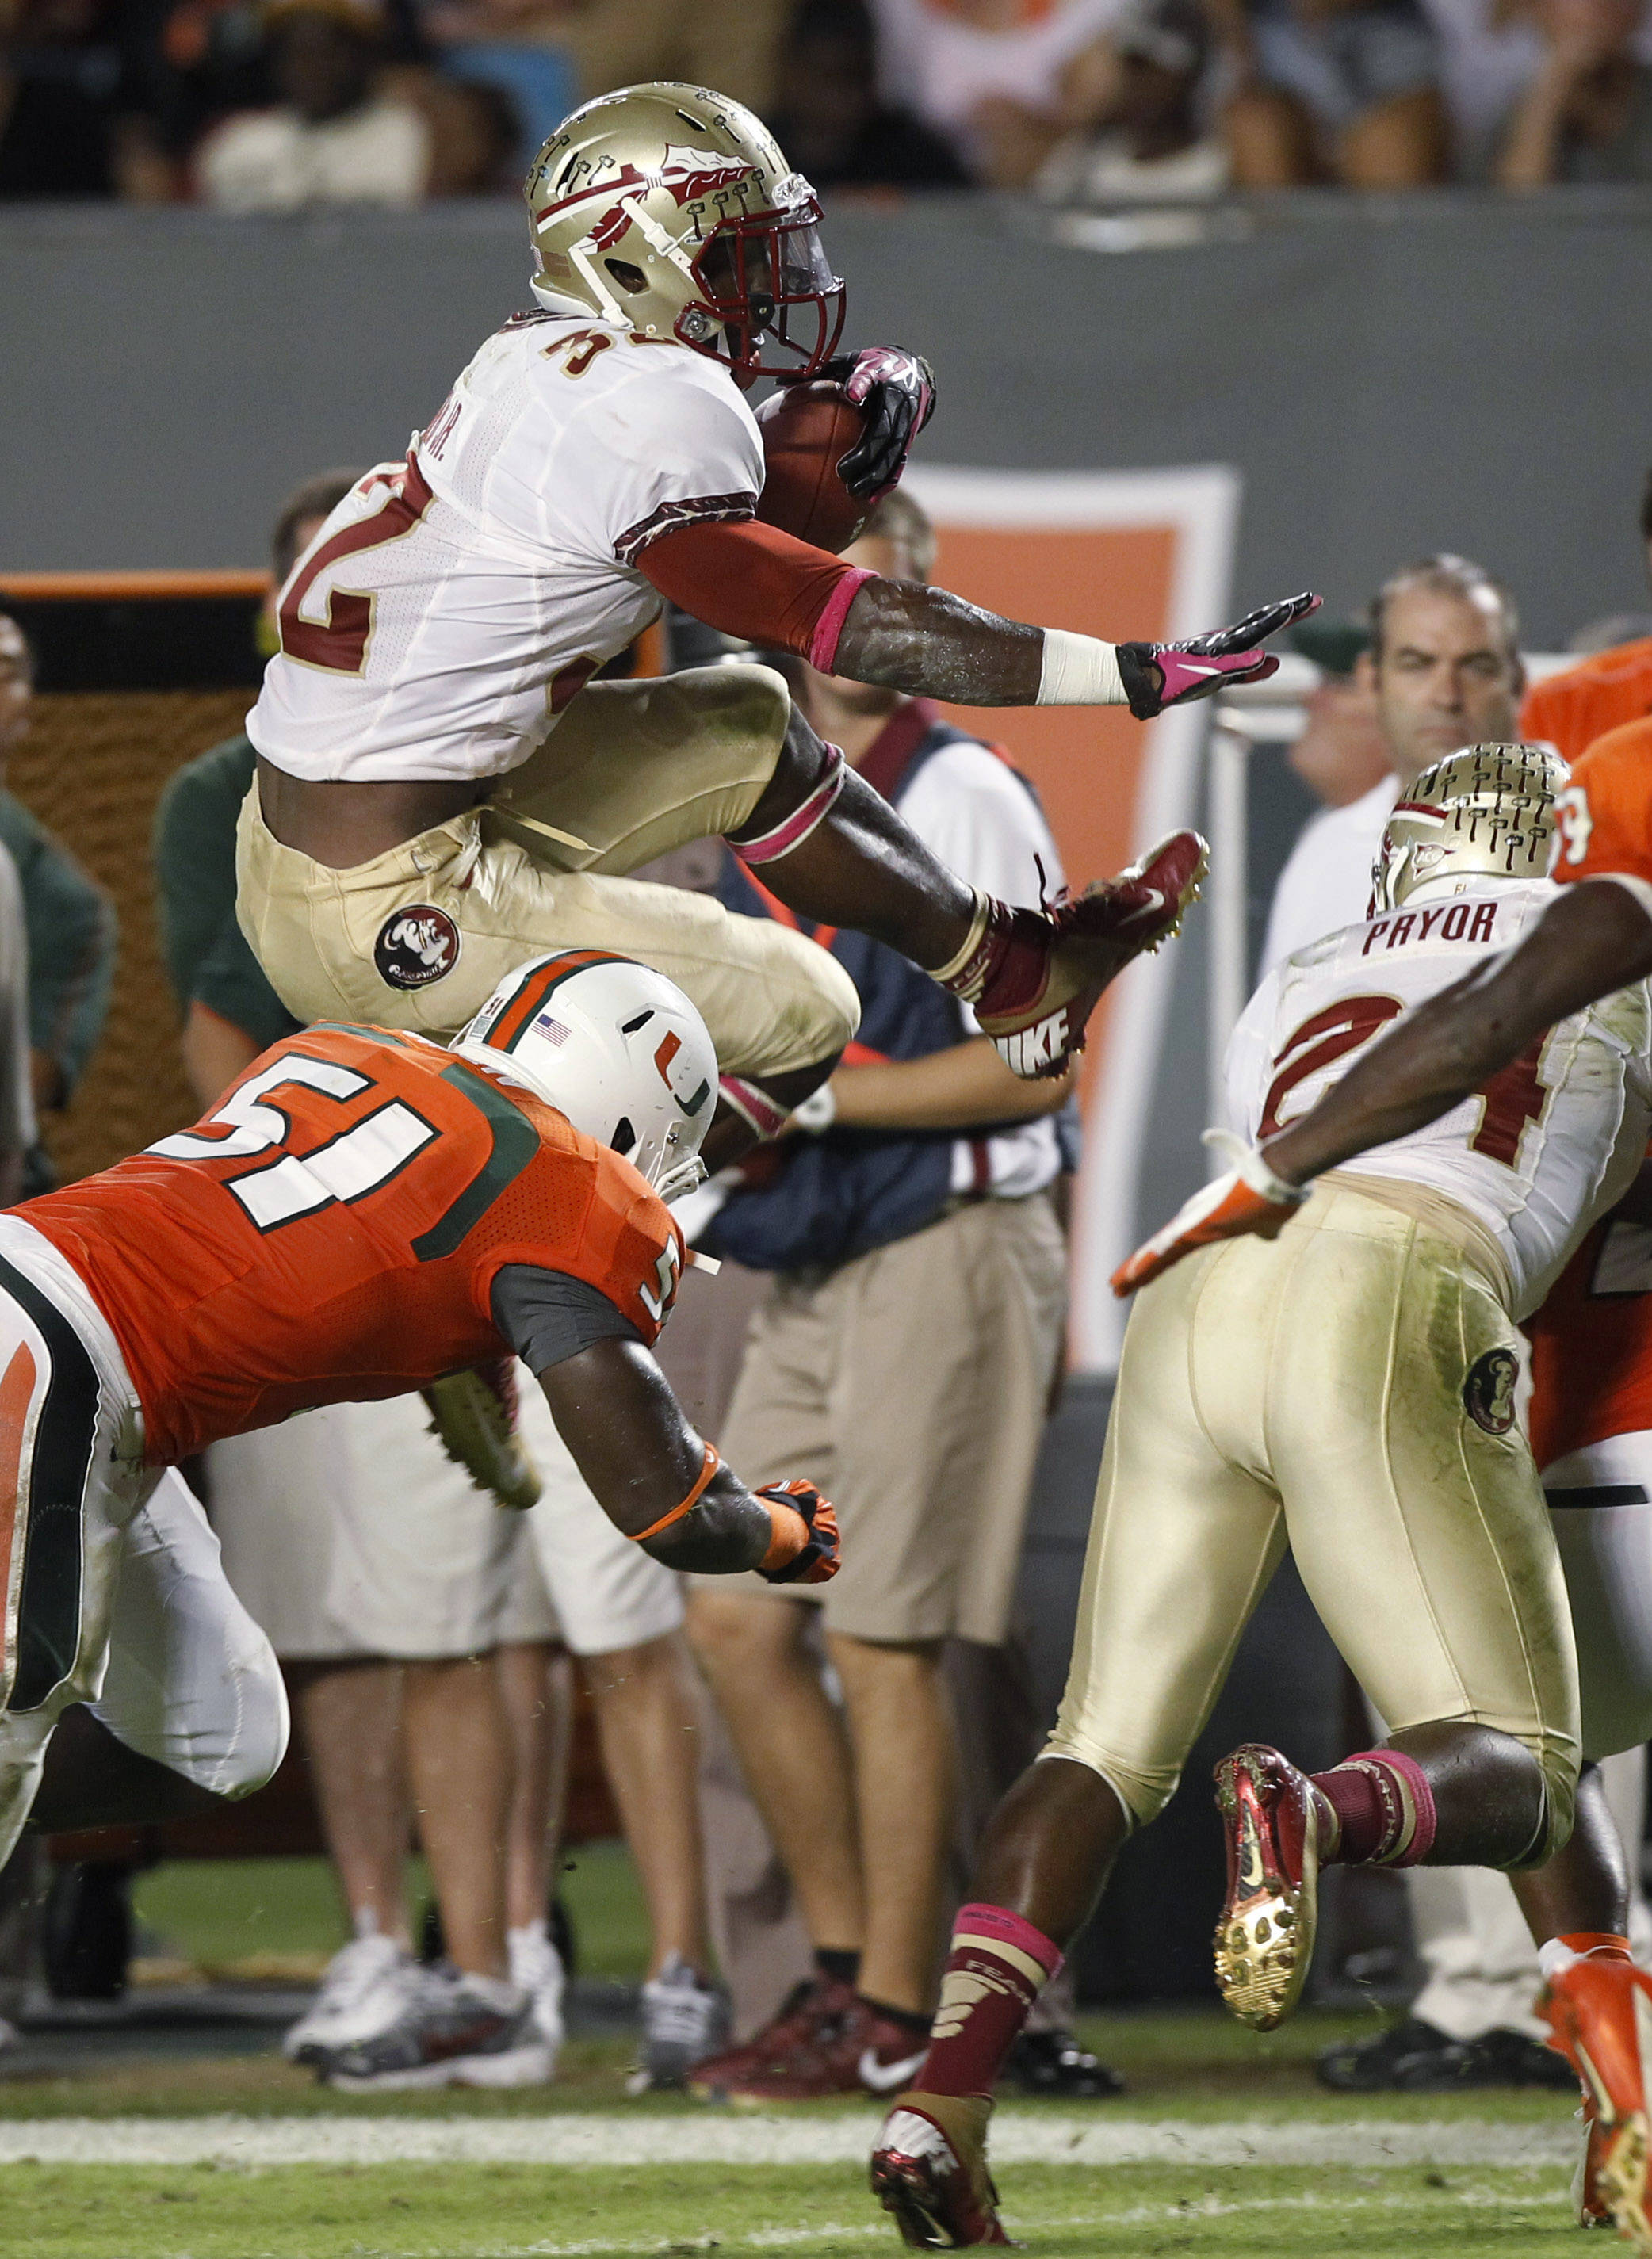 Florida State's James Wilder Jr., top, jumps to avoid Miami's Shayon Green (51)during the first half of an NCAA college football game in Miami, Saturday, Oct. 20, 2012. (AP Photo/Alan Diaz)